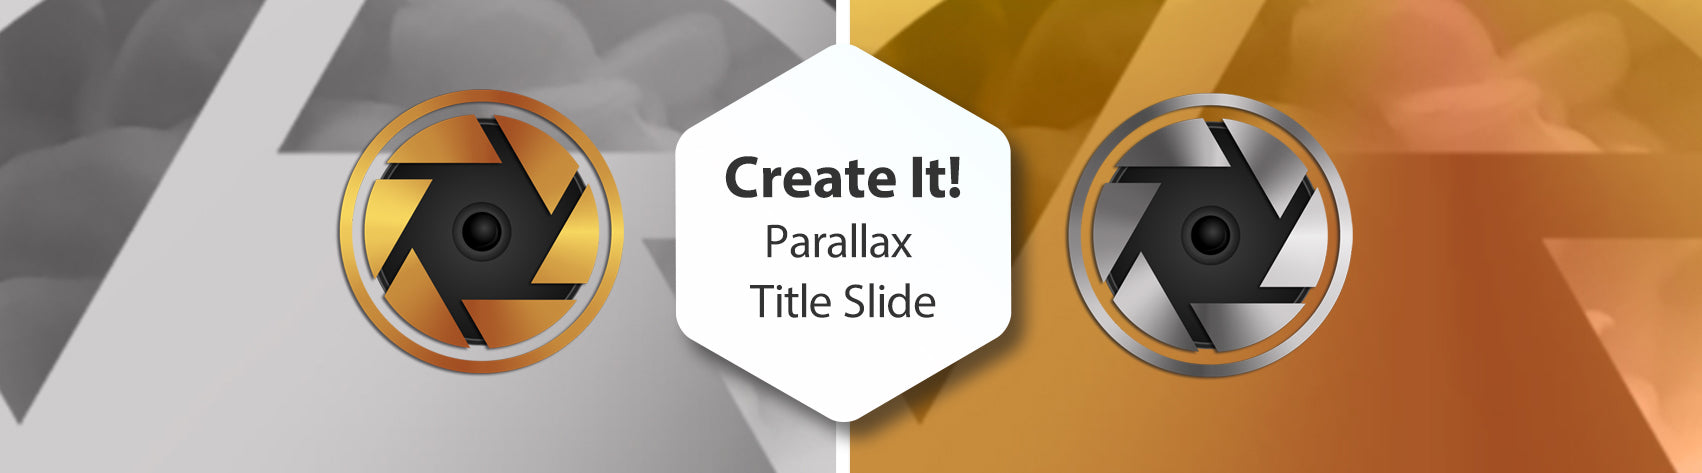 Create It! Parallax Title Slide